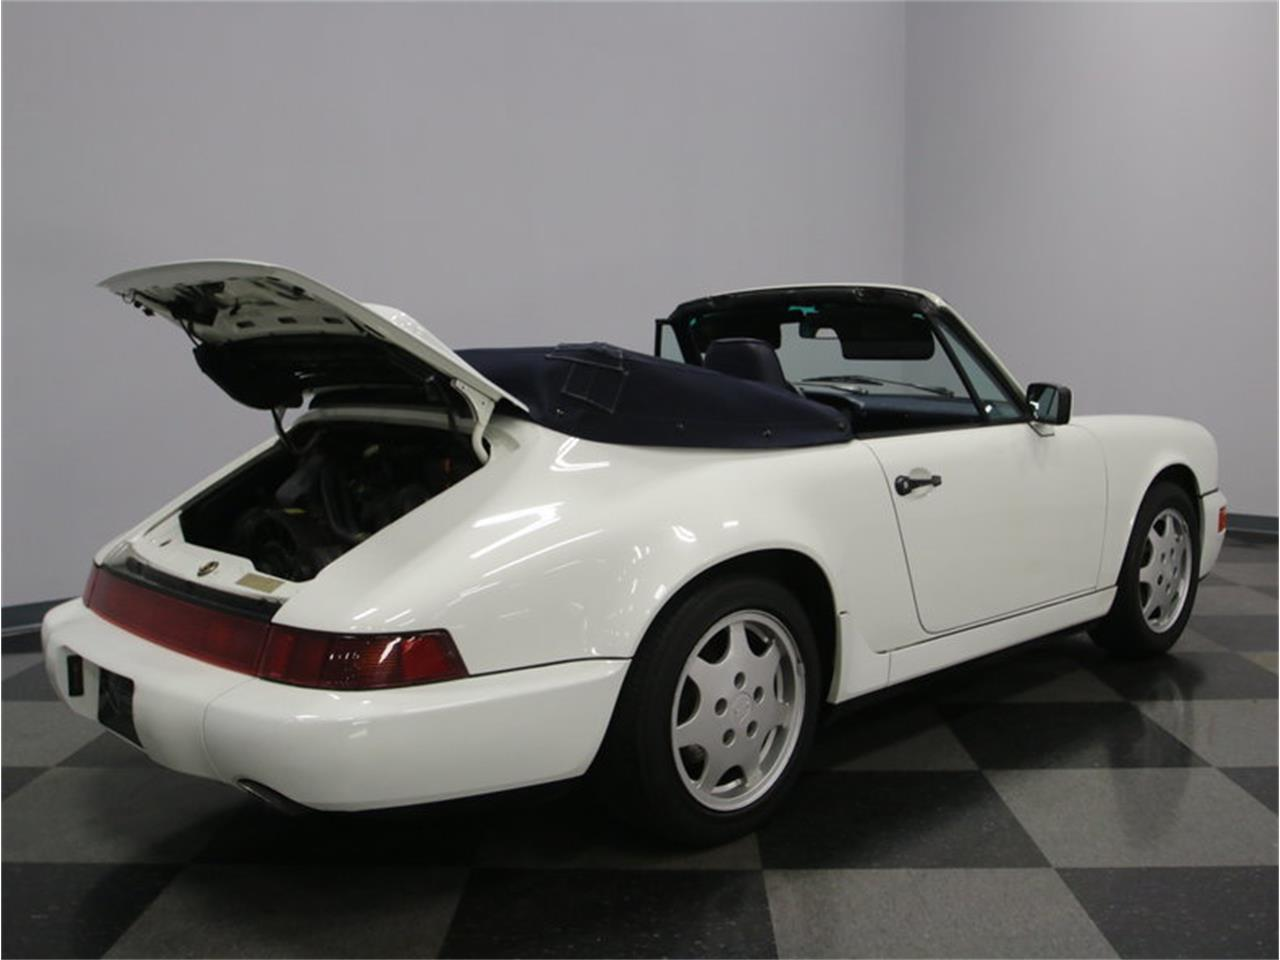 Large Picture of 1991 Porsche 911 Carrera located in Tennessee - $32,995.00 - L8FC